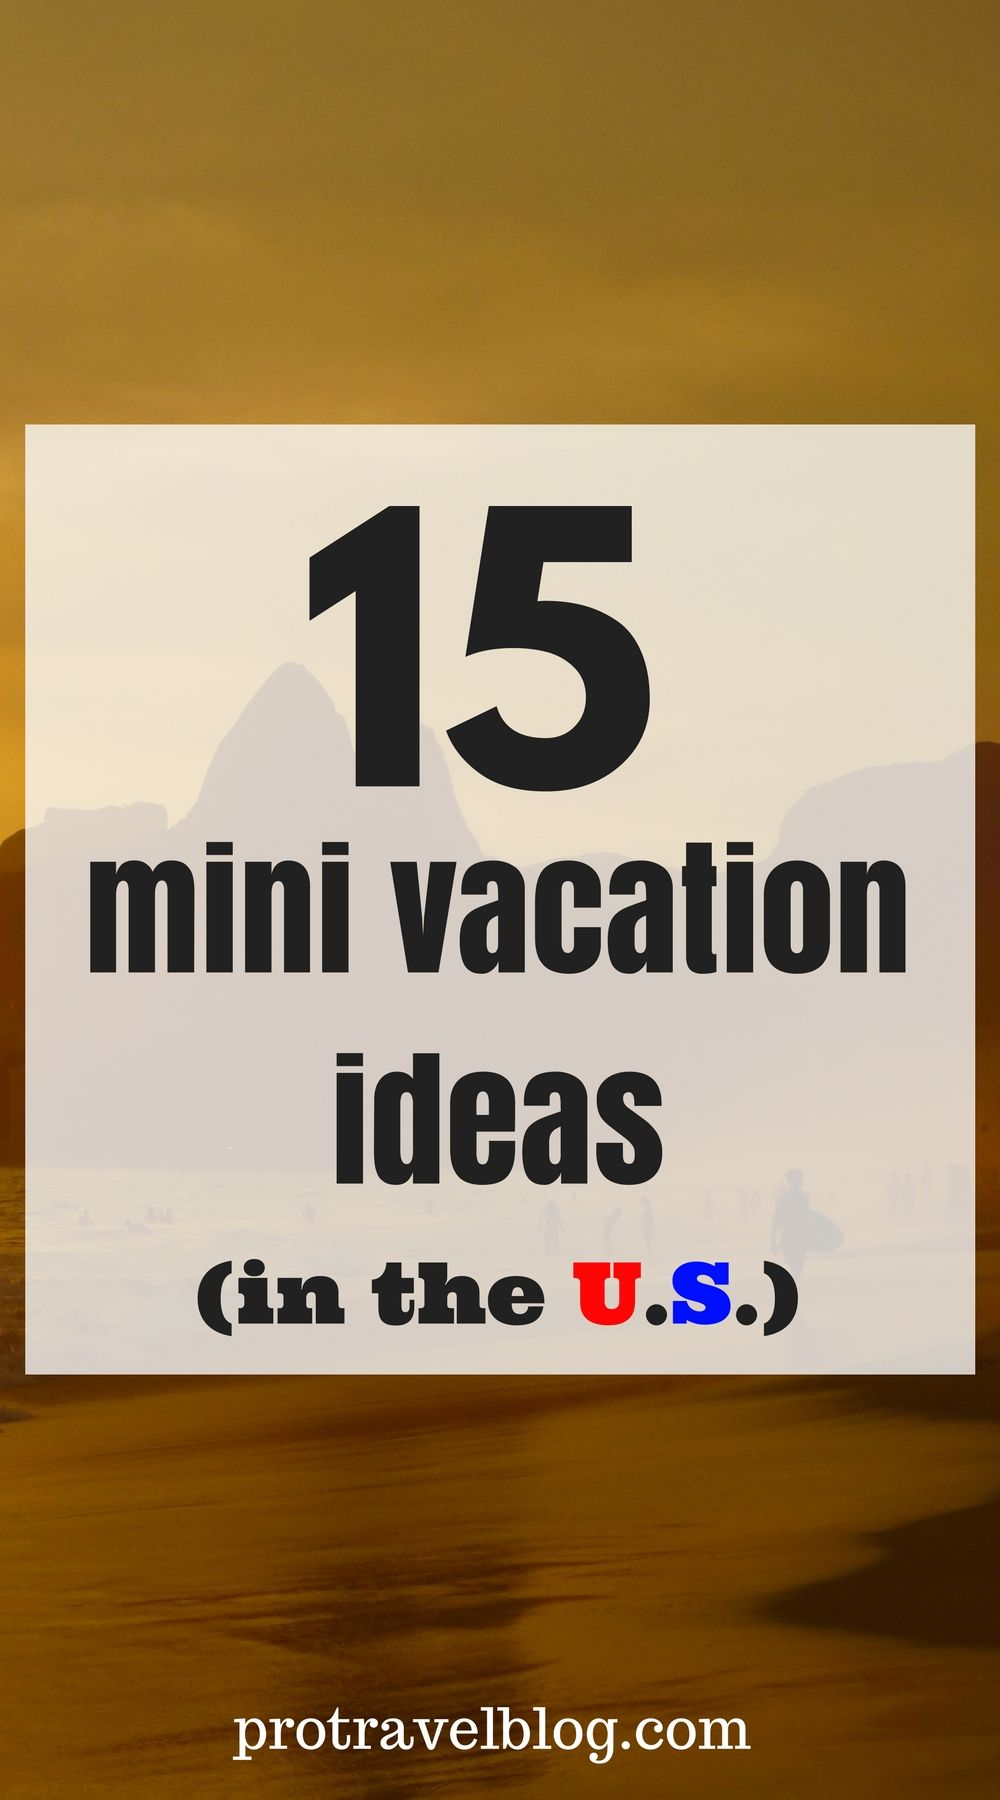 Need Mini Vacation Ideas Here Are My Top 15 In The U S For A Getaway Weekend Or Whenever Click To See List